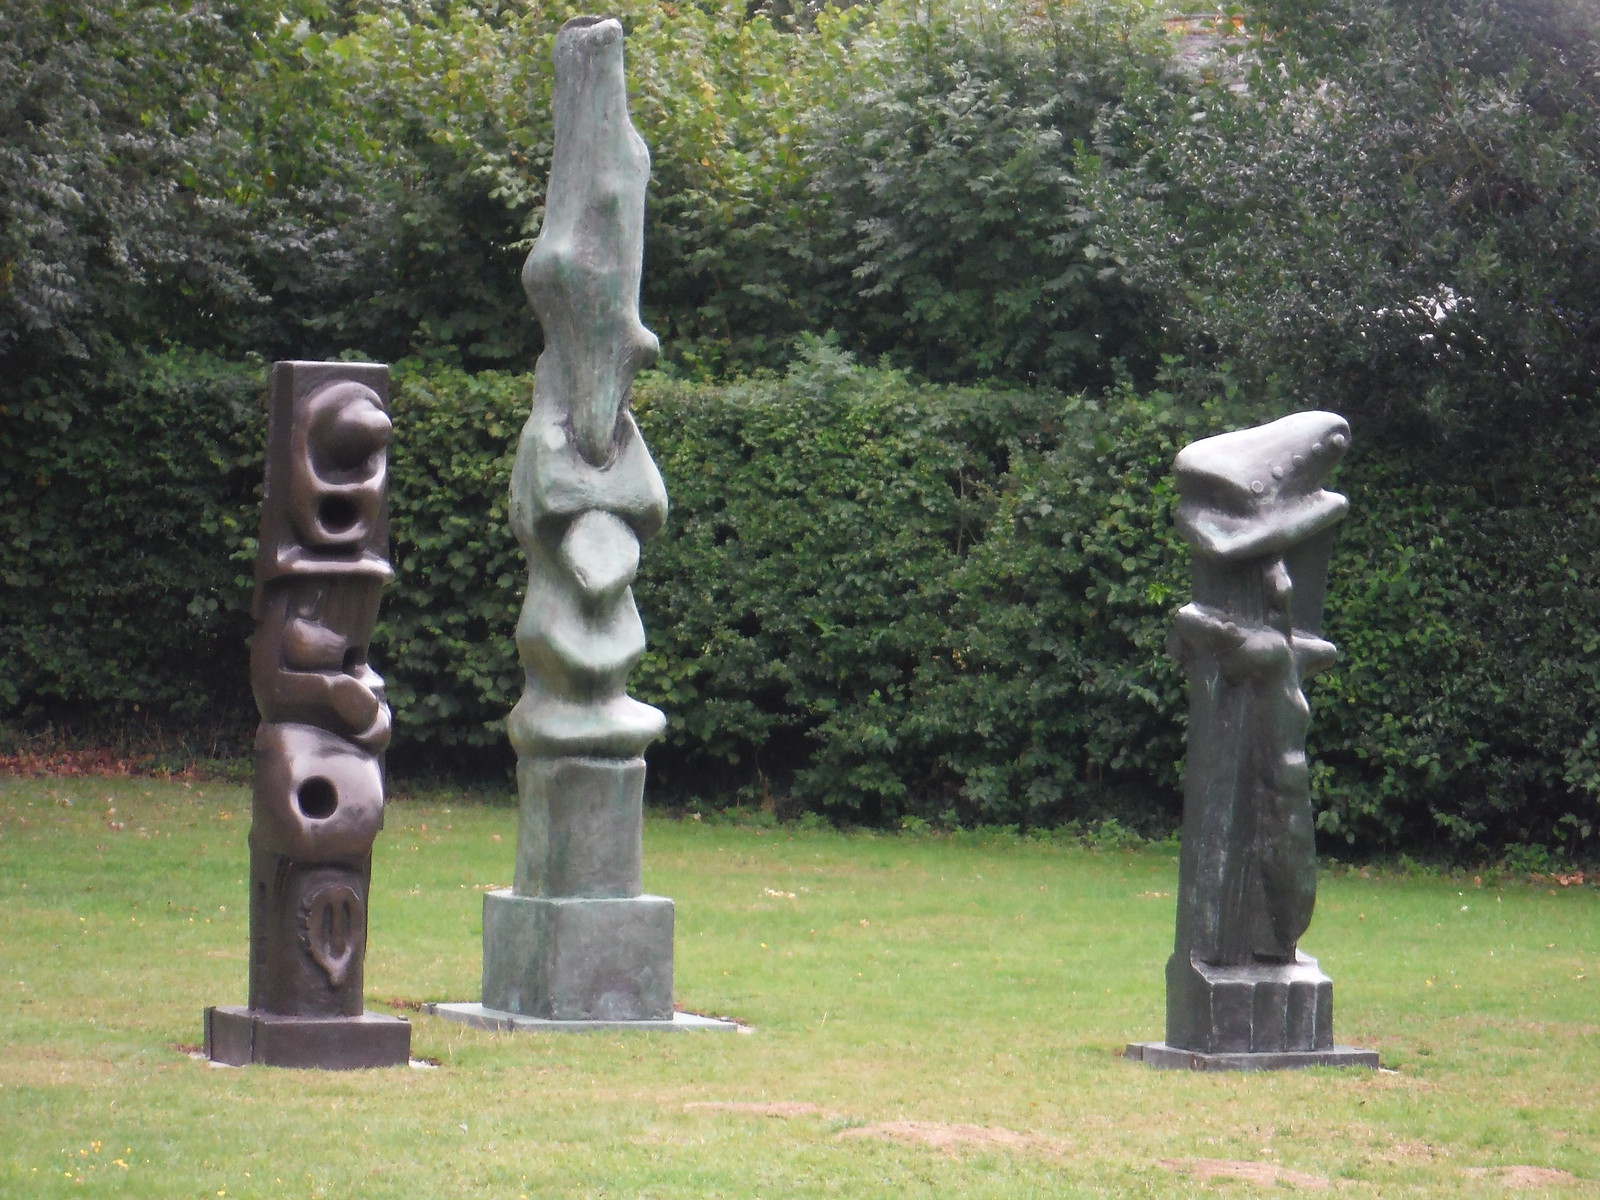 Upright Motives No. 5, No. 7 & No. 8 (1955-56) SWC Walk 164 Roydon to Sawbridgeworth via Henry Moore Foundation